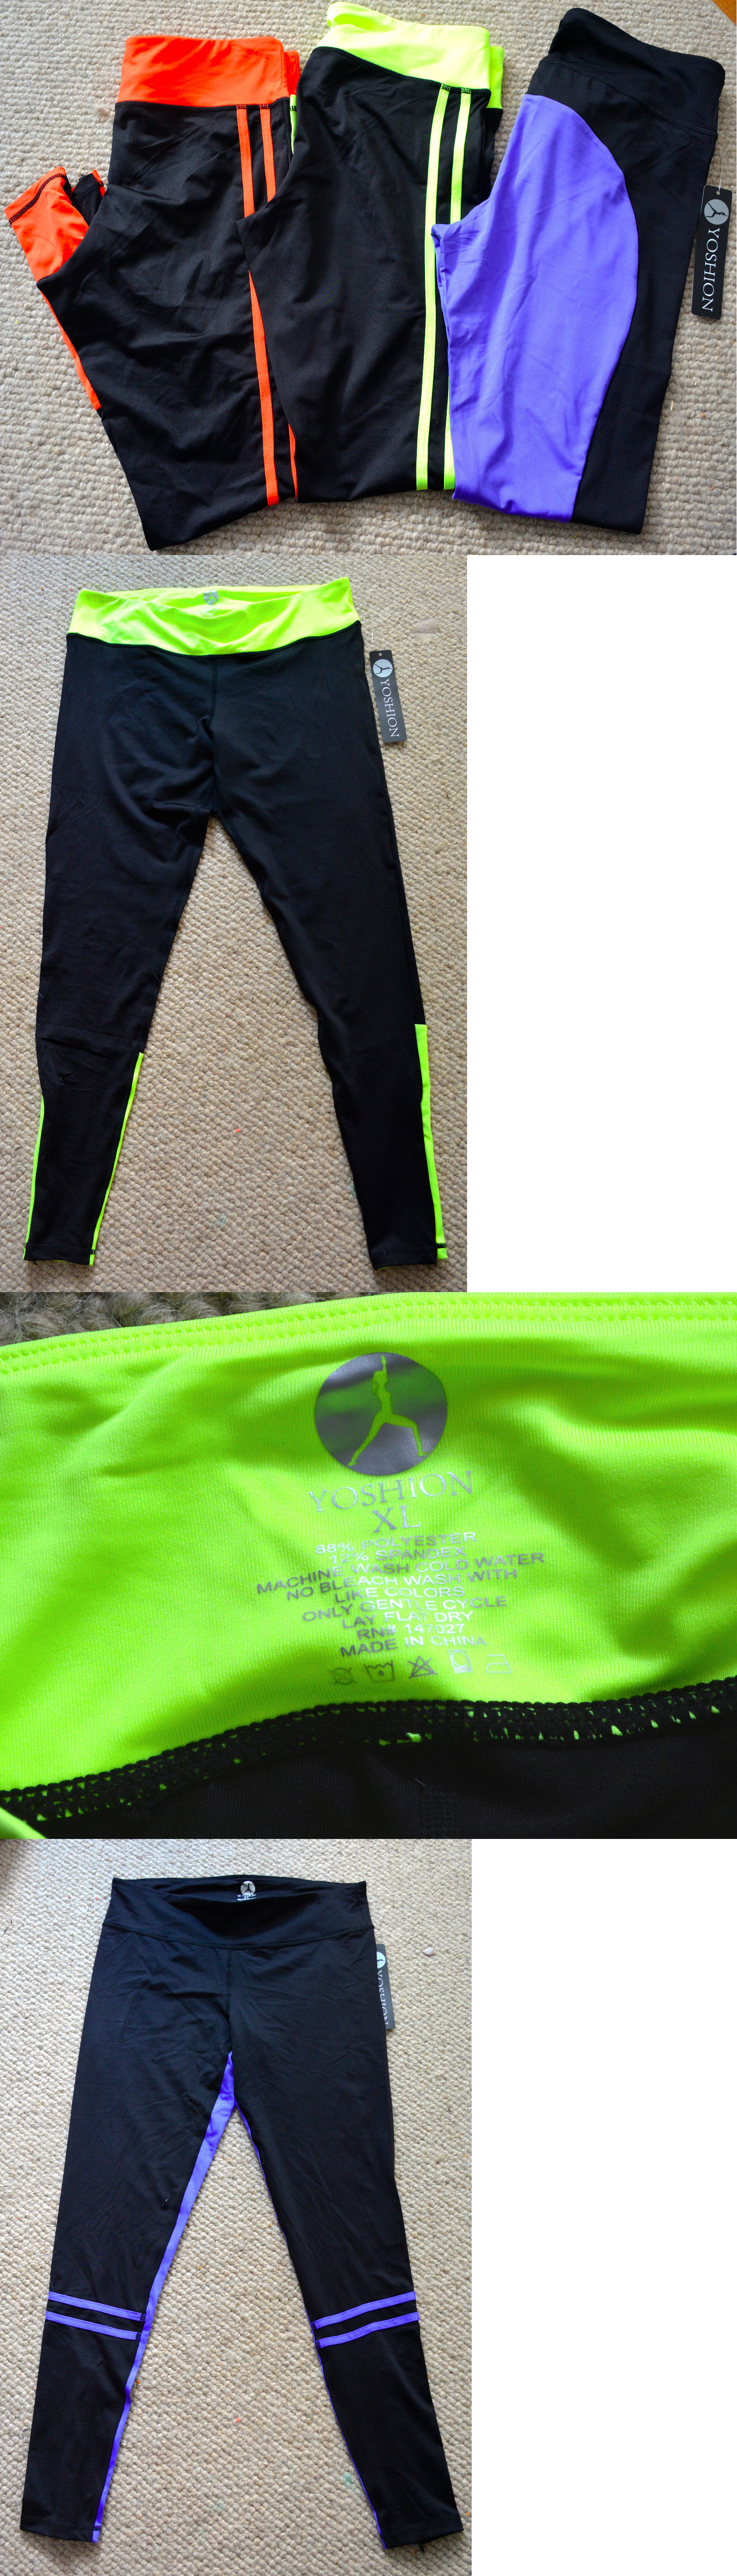 Compression and Base Layers 179822: New Lot 3 Yoshion Compression Running Leggings Pants Tights Black Orange Xl #Bj BUY IT NOW ONLY: $59.95